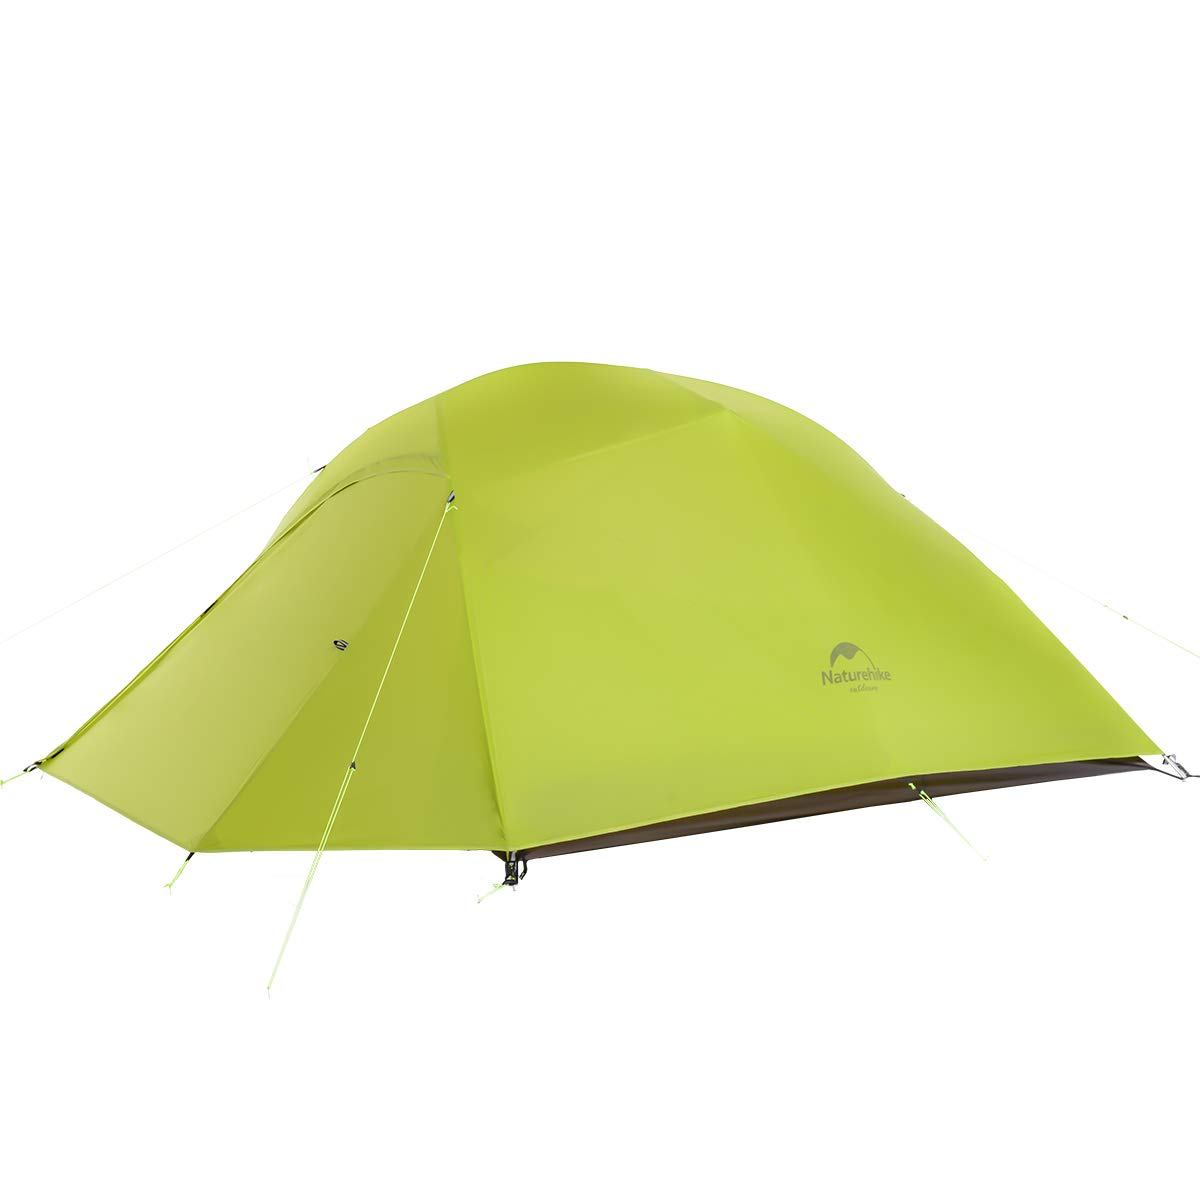 Naturehike Cloud-Up 3 Person 4 Season Backpacking Tent with Footprint - Lightweight Winter Tent for Hiking C&ing and Expeditions (20D Mustard Green)  sc 1 st  Amazon.ca & Naturehike Cloud-Up 3 Person 4 Season Backpacking Tent with ...